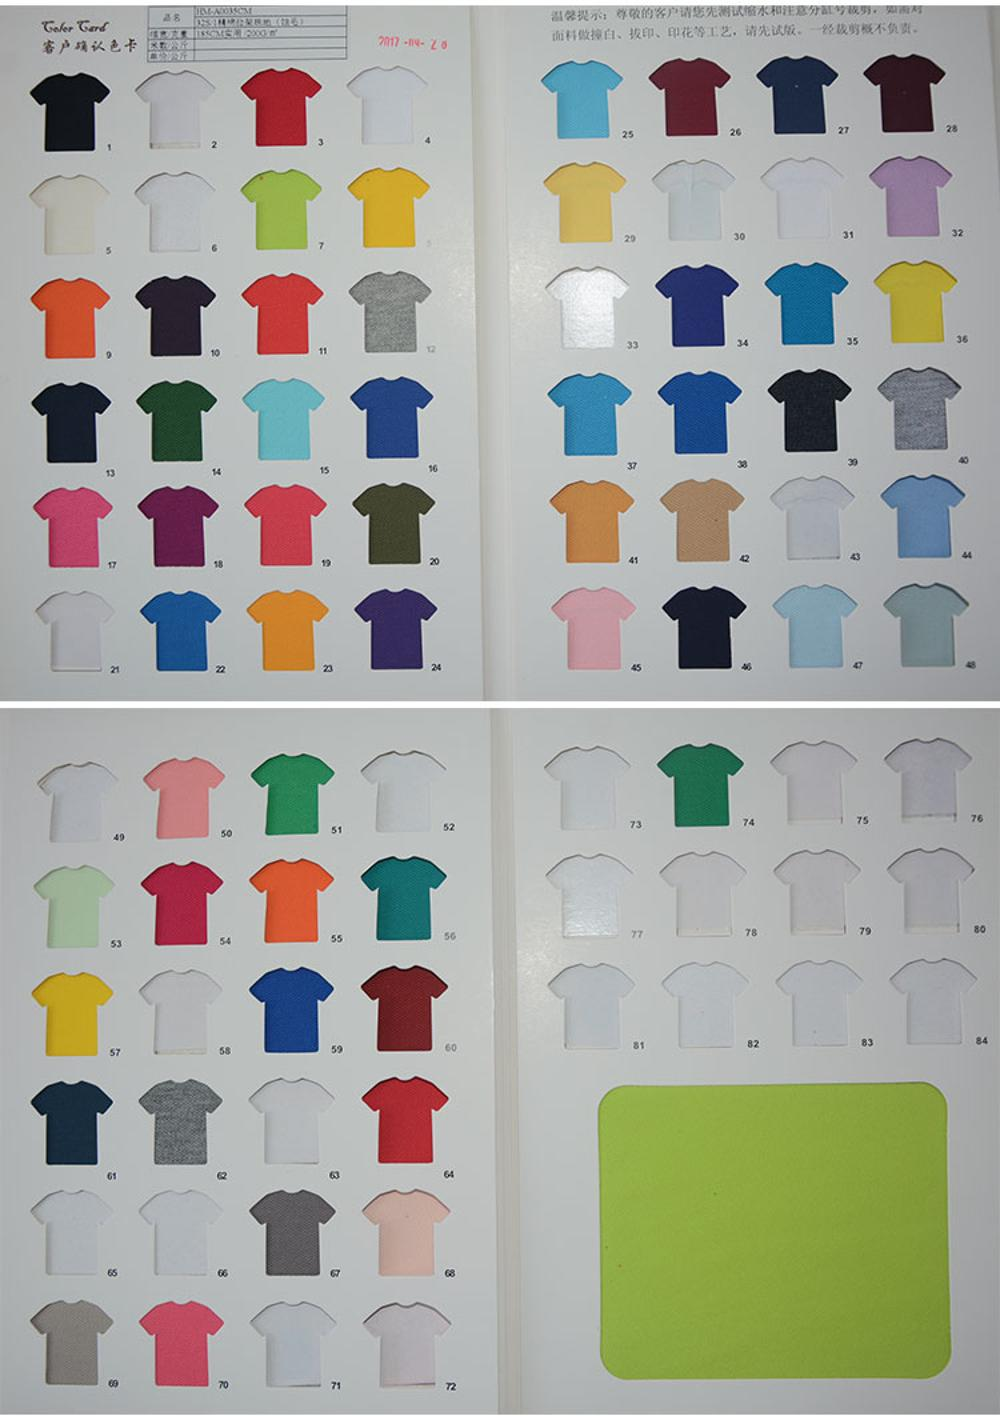 Breathable and Refreshing Pique Polo Shirt Use Spandex 32S Cotton Pique Fabric